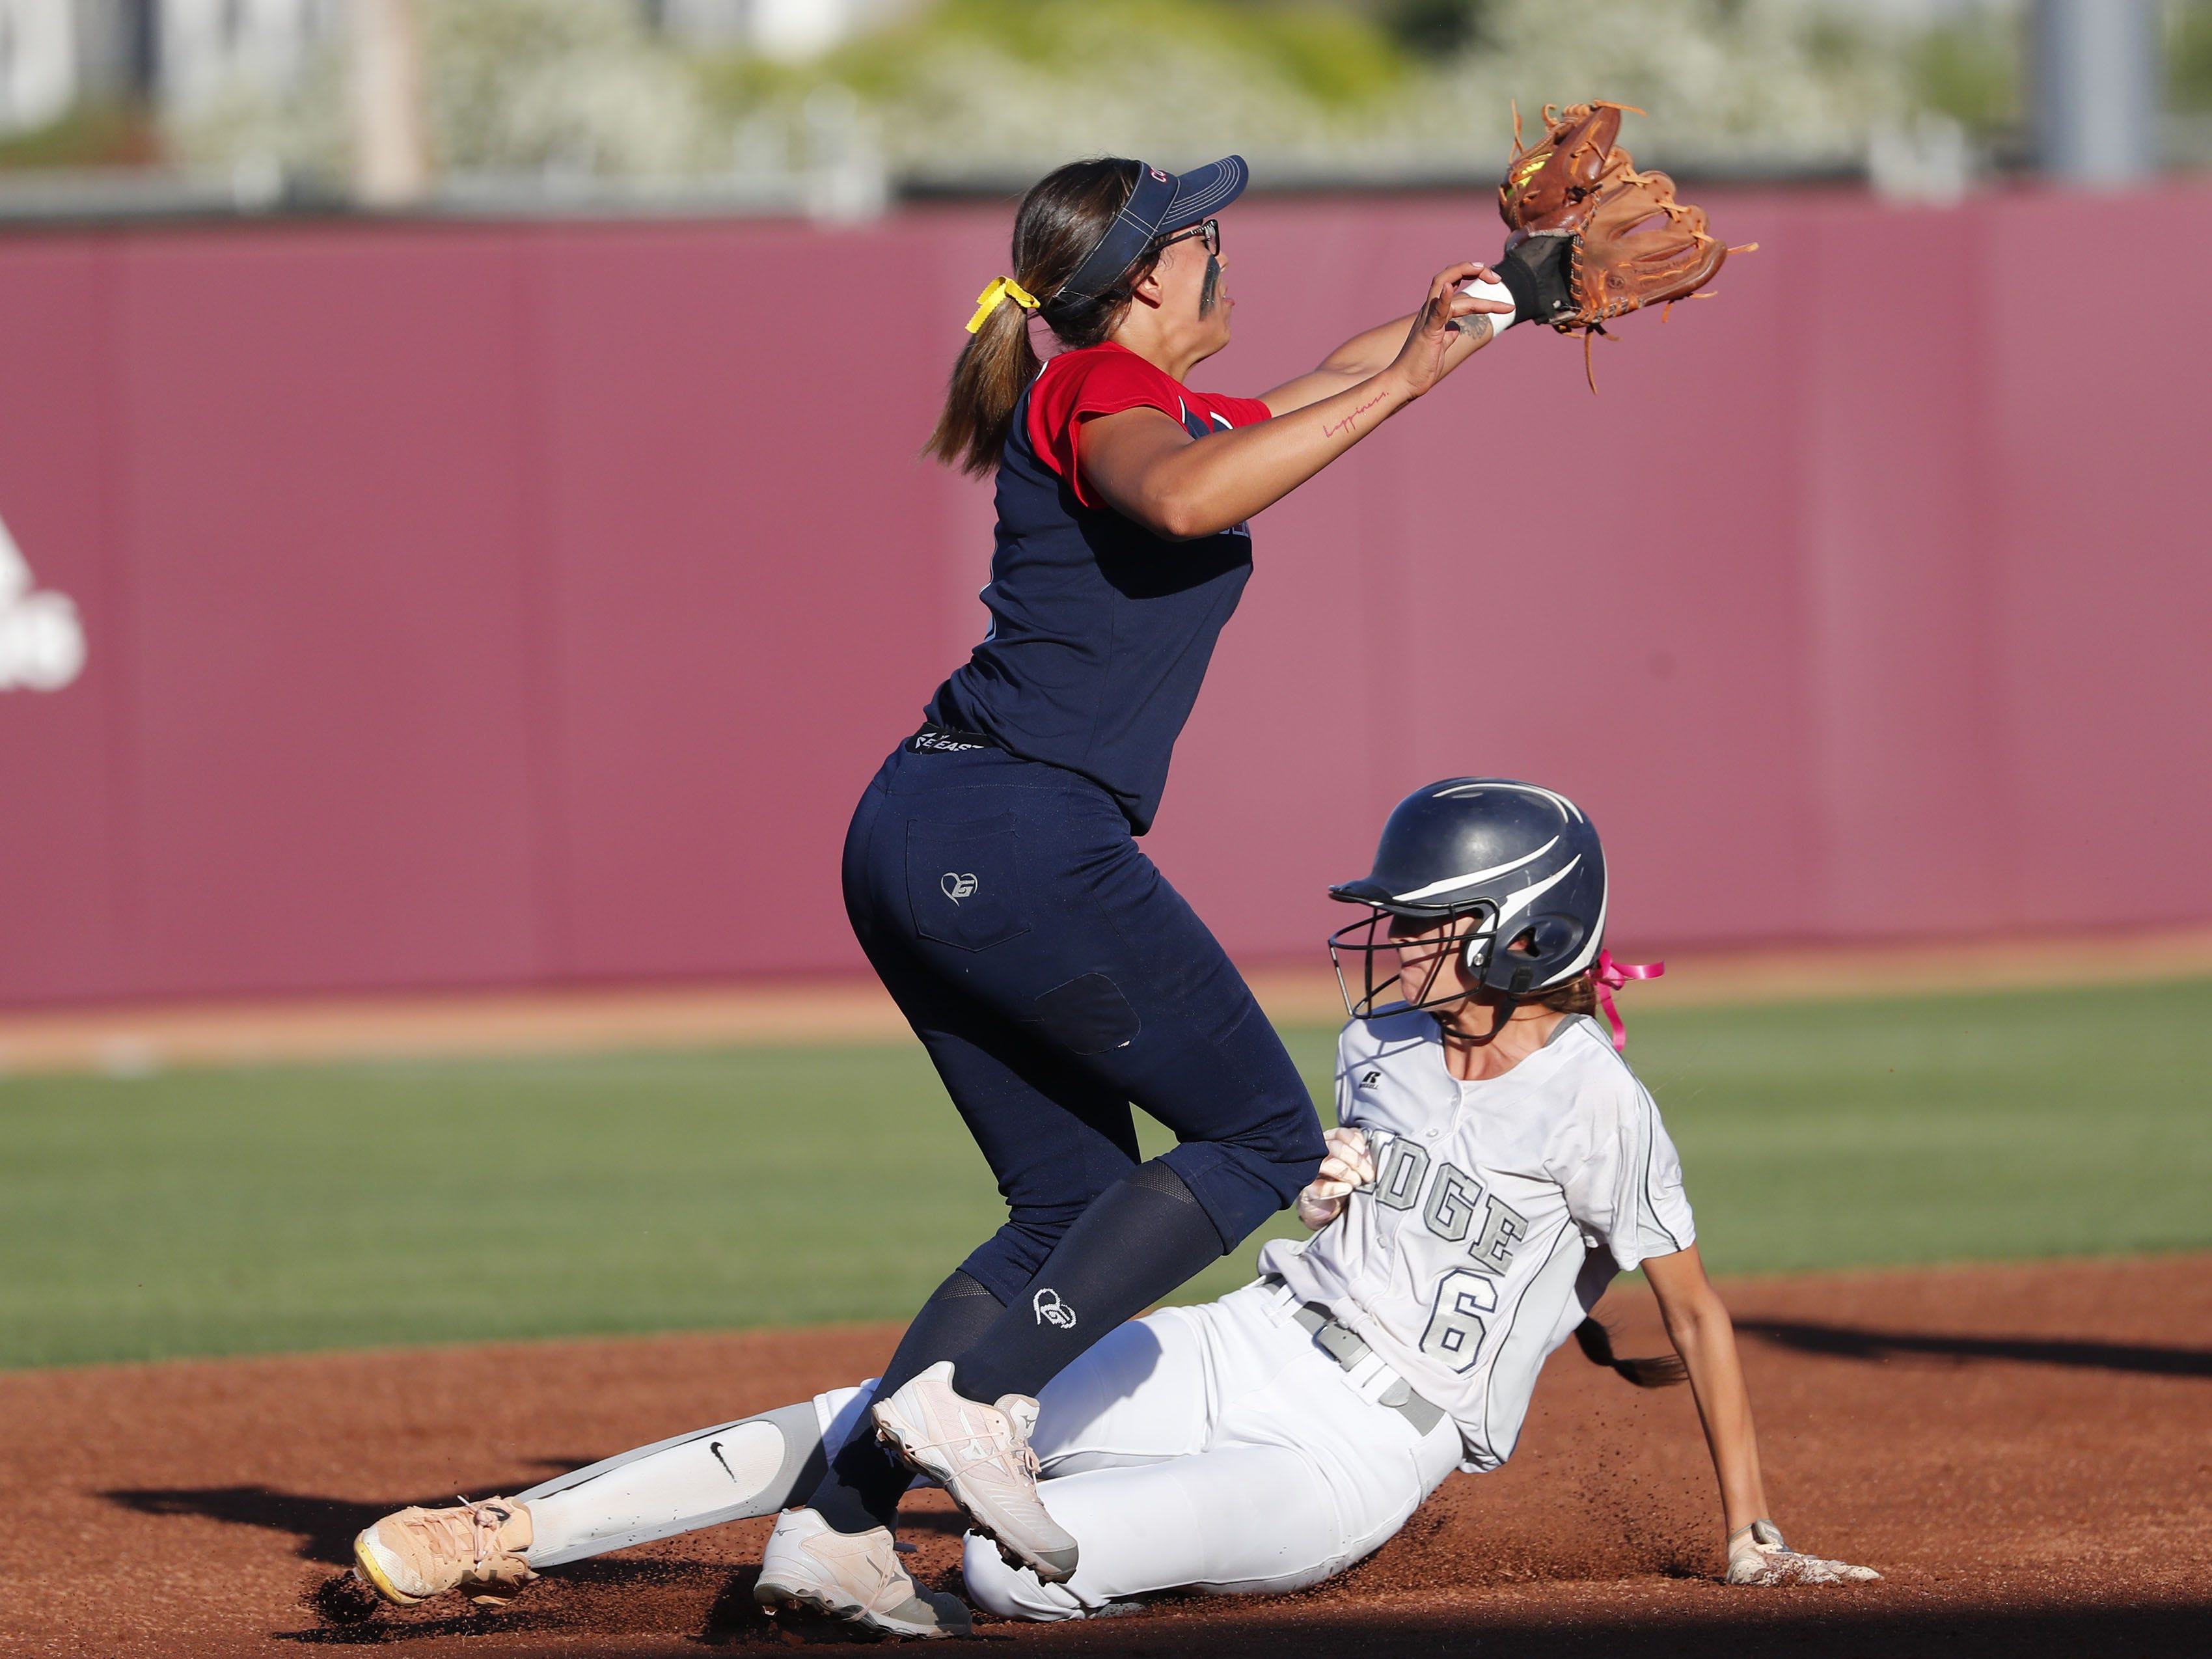 Ironwood Ridge center fielder Jaiden Reid (6) steals second base ahead of the tag by Centennial shortstop Dren Meginnis (1) during the 5A State Softball Championship in Tempe, Ariz. May 13, 2019.